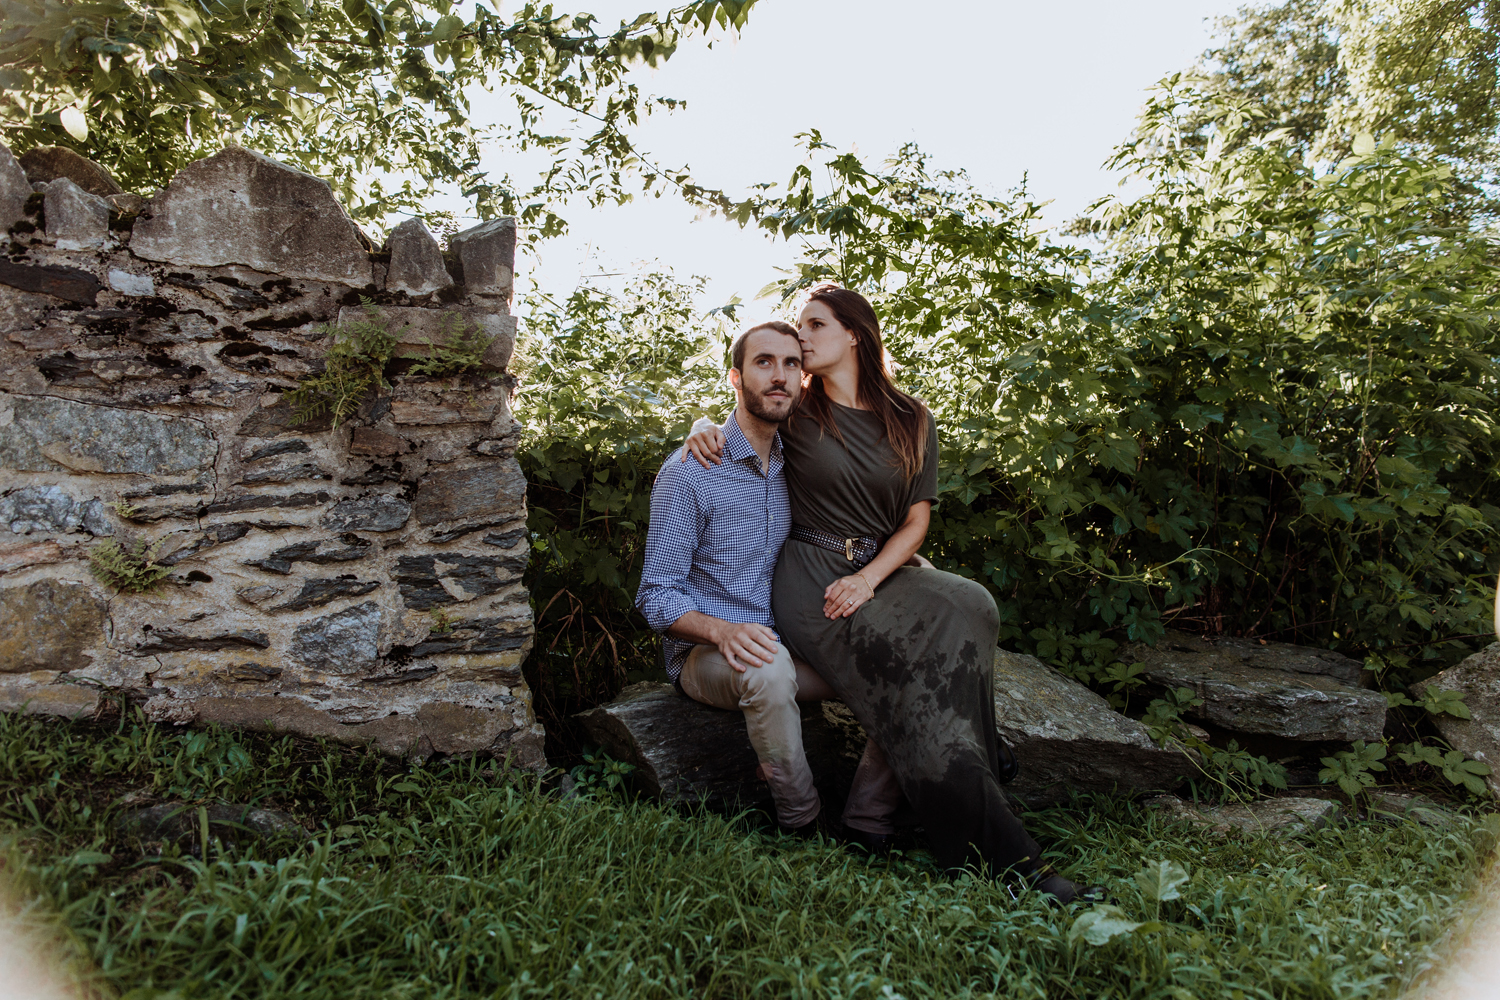 the-laurels-preserve-brandywine-conservancycoatesville-pa-sunrise-engagement-photography-rock-wall